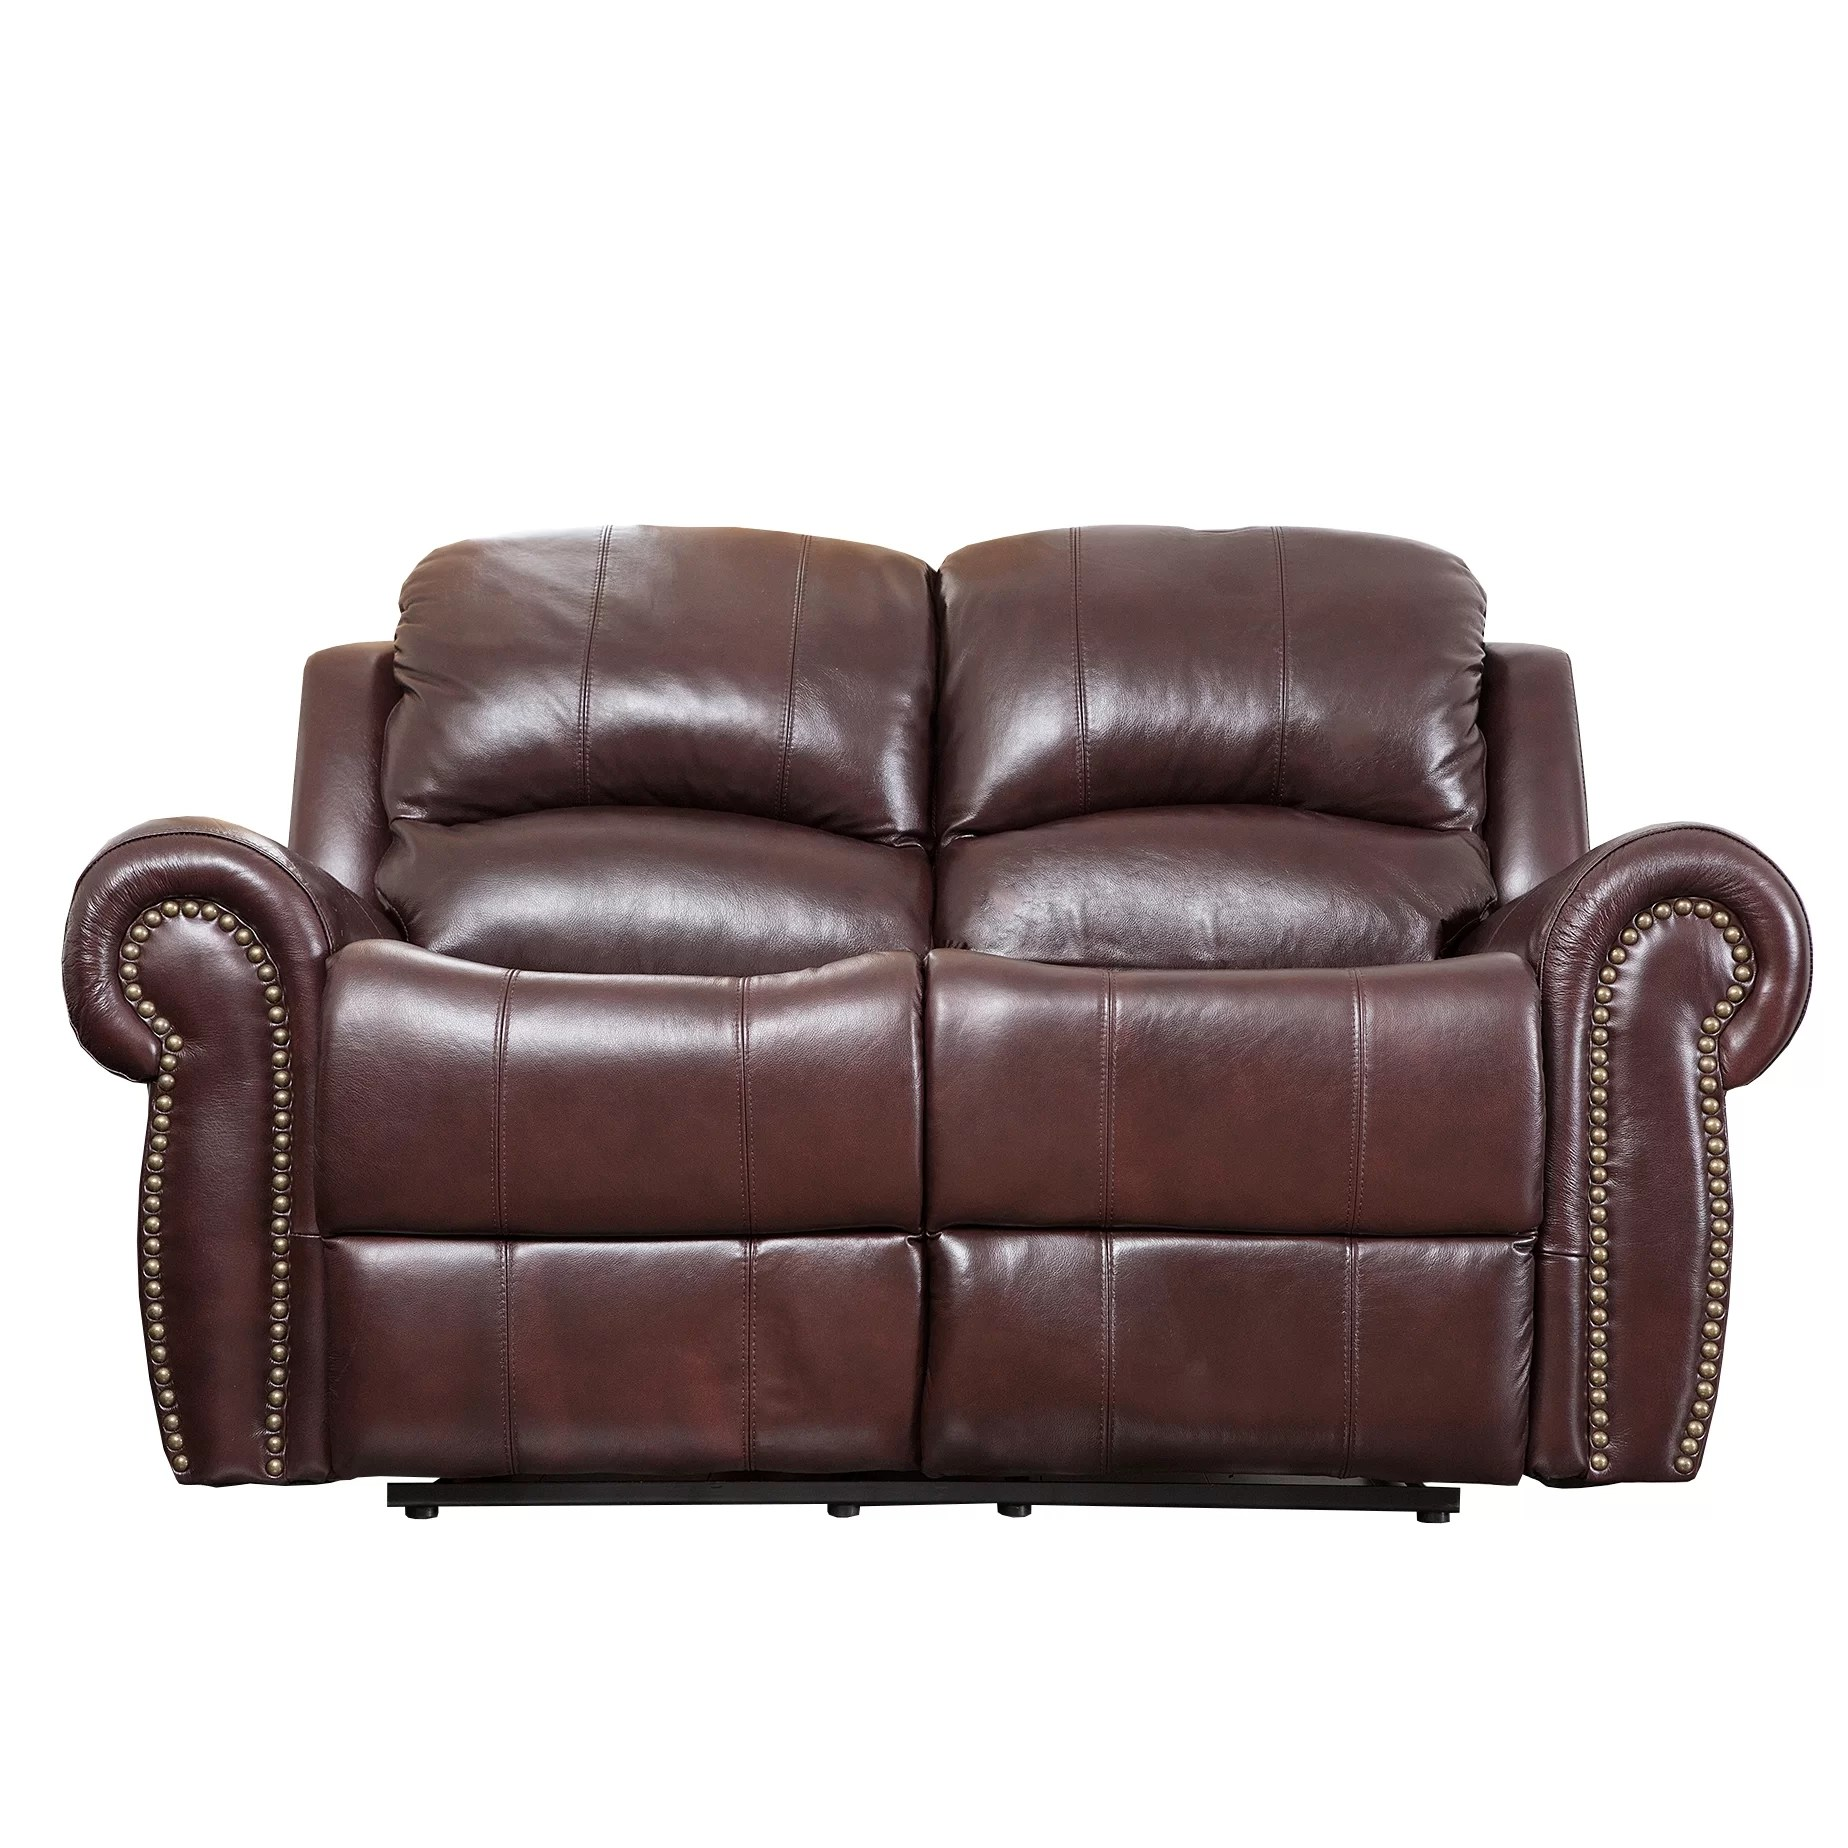 Leather Loveseat Abbyson Living Sedona Leather Reclining Loveseat And Reviews